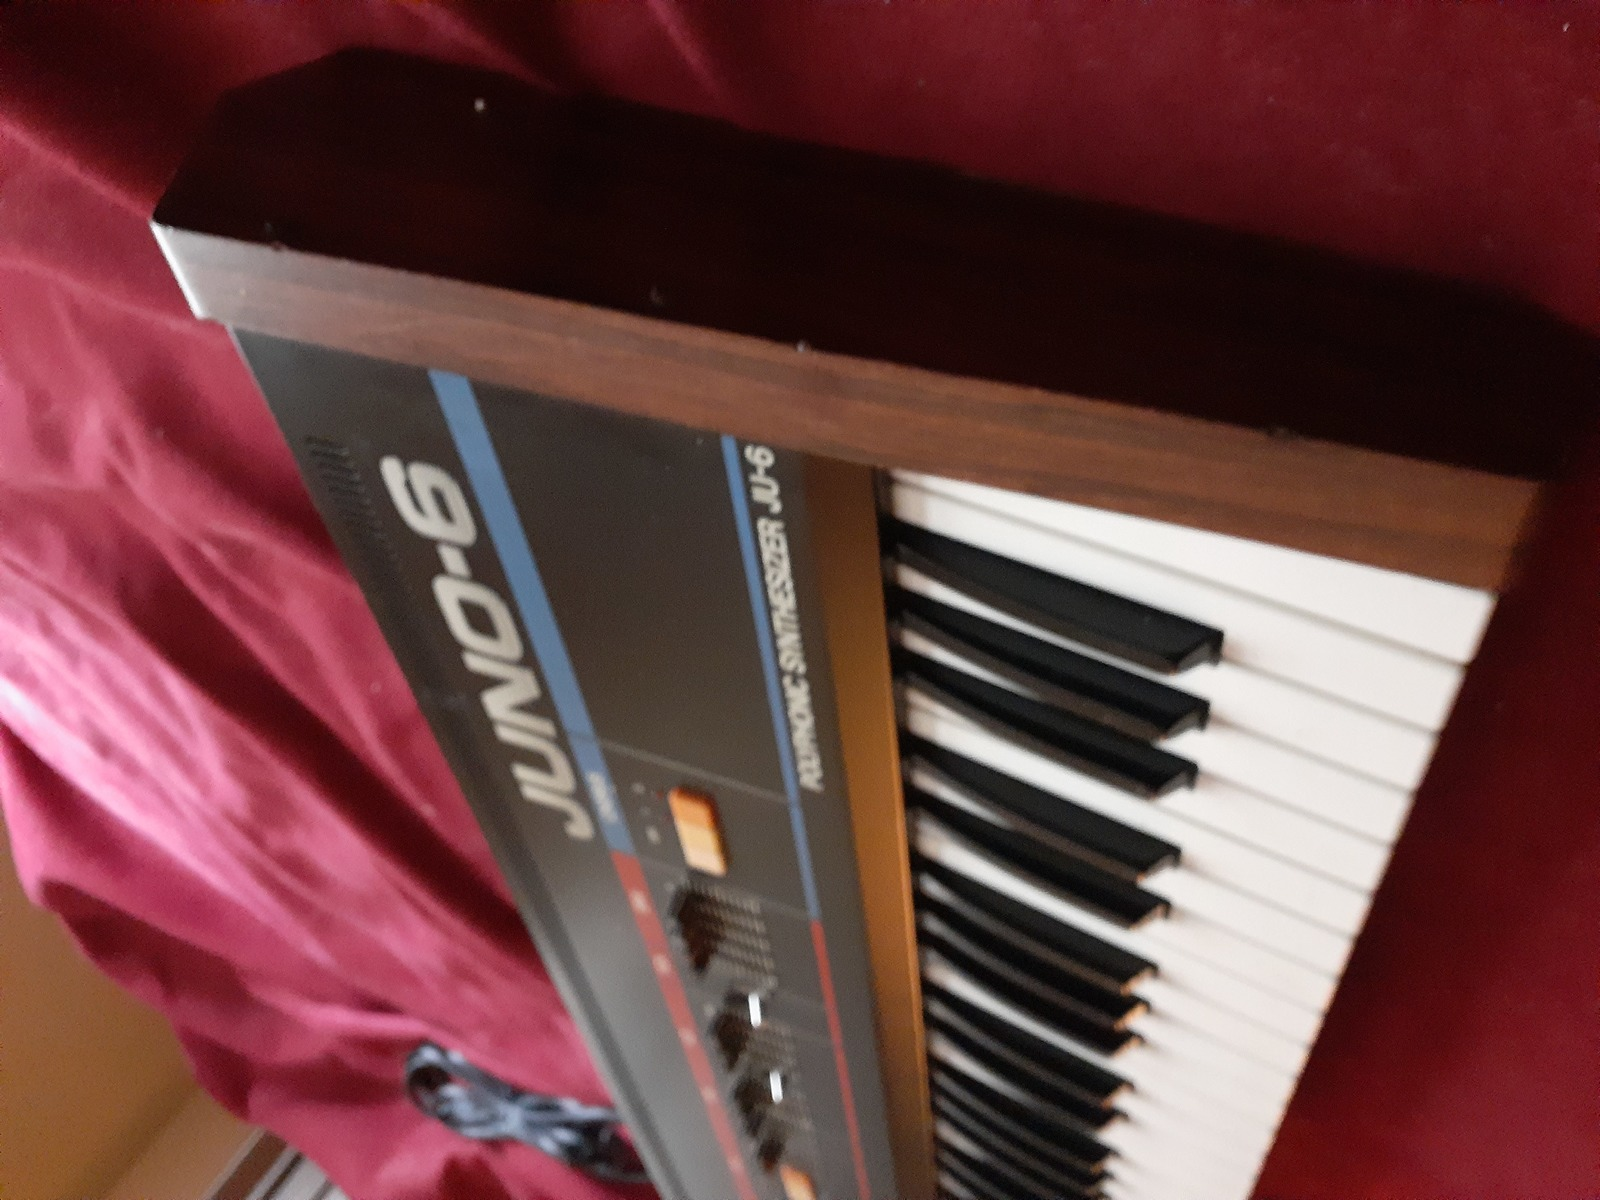 jimmarchi1's music gear photo containing Roland Juno-6